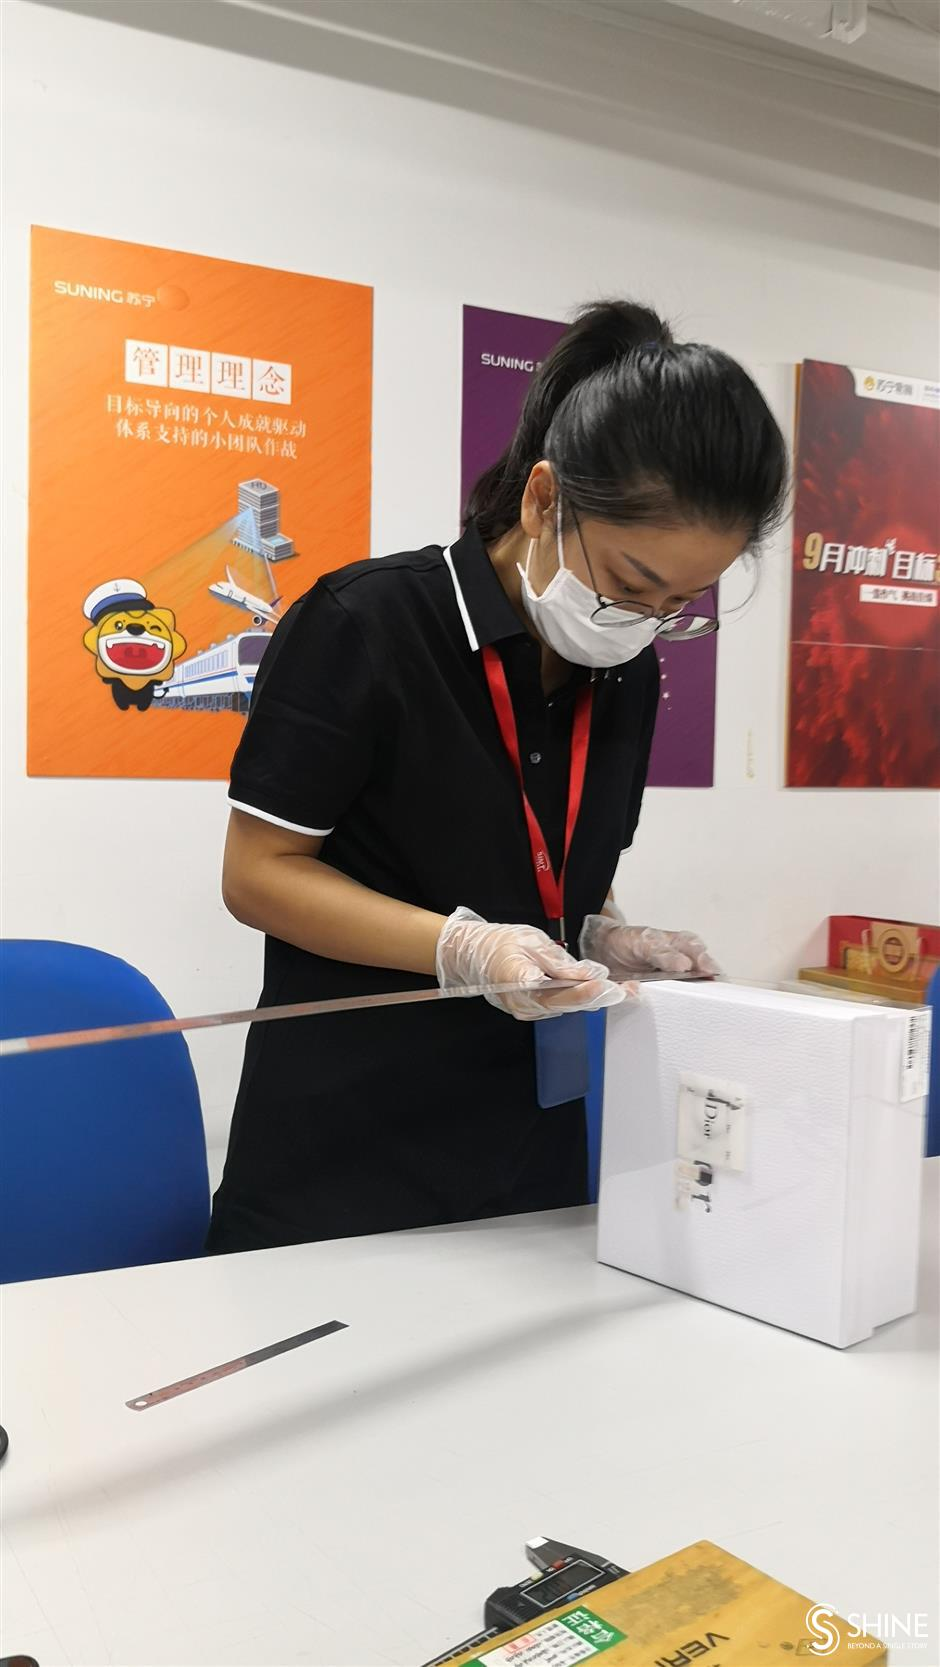 Overpackaging suspected at Cloud Nine mall